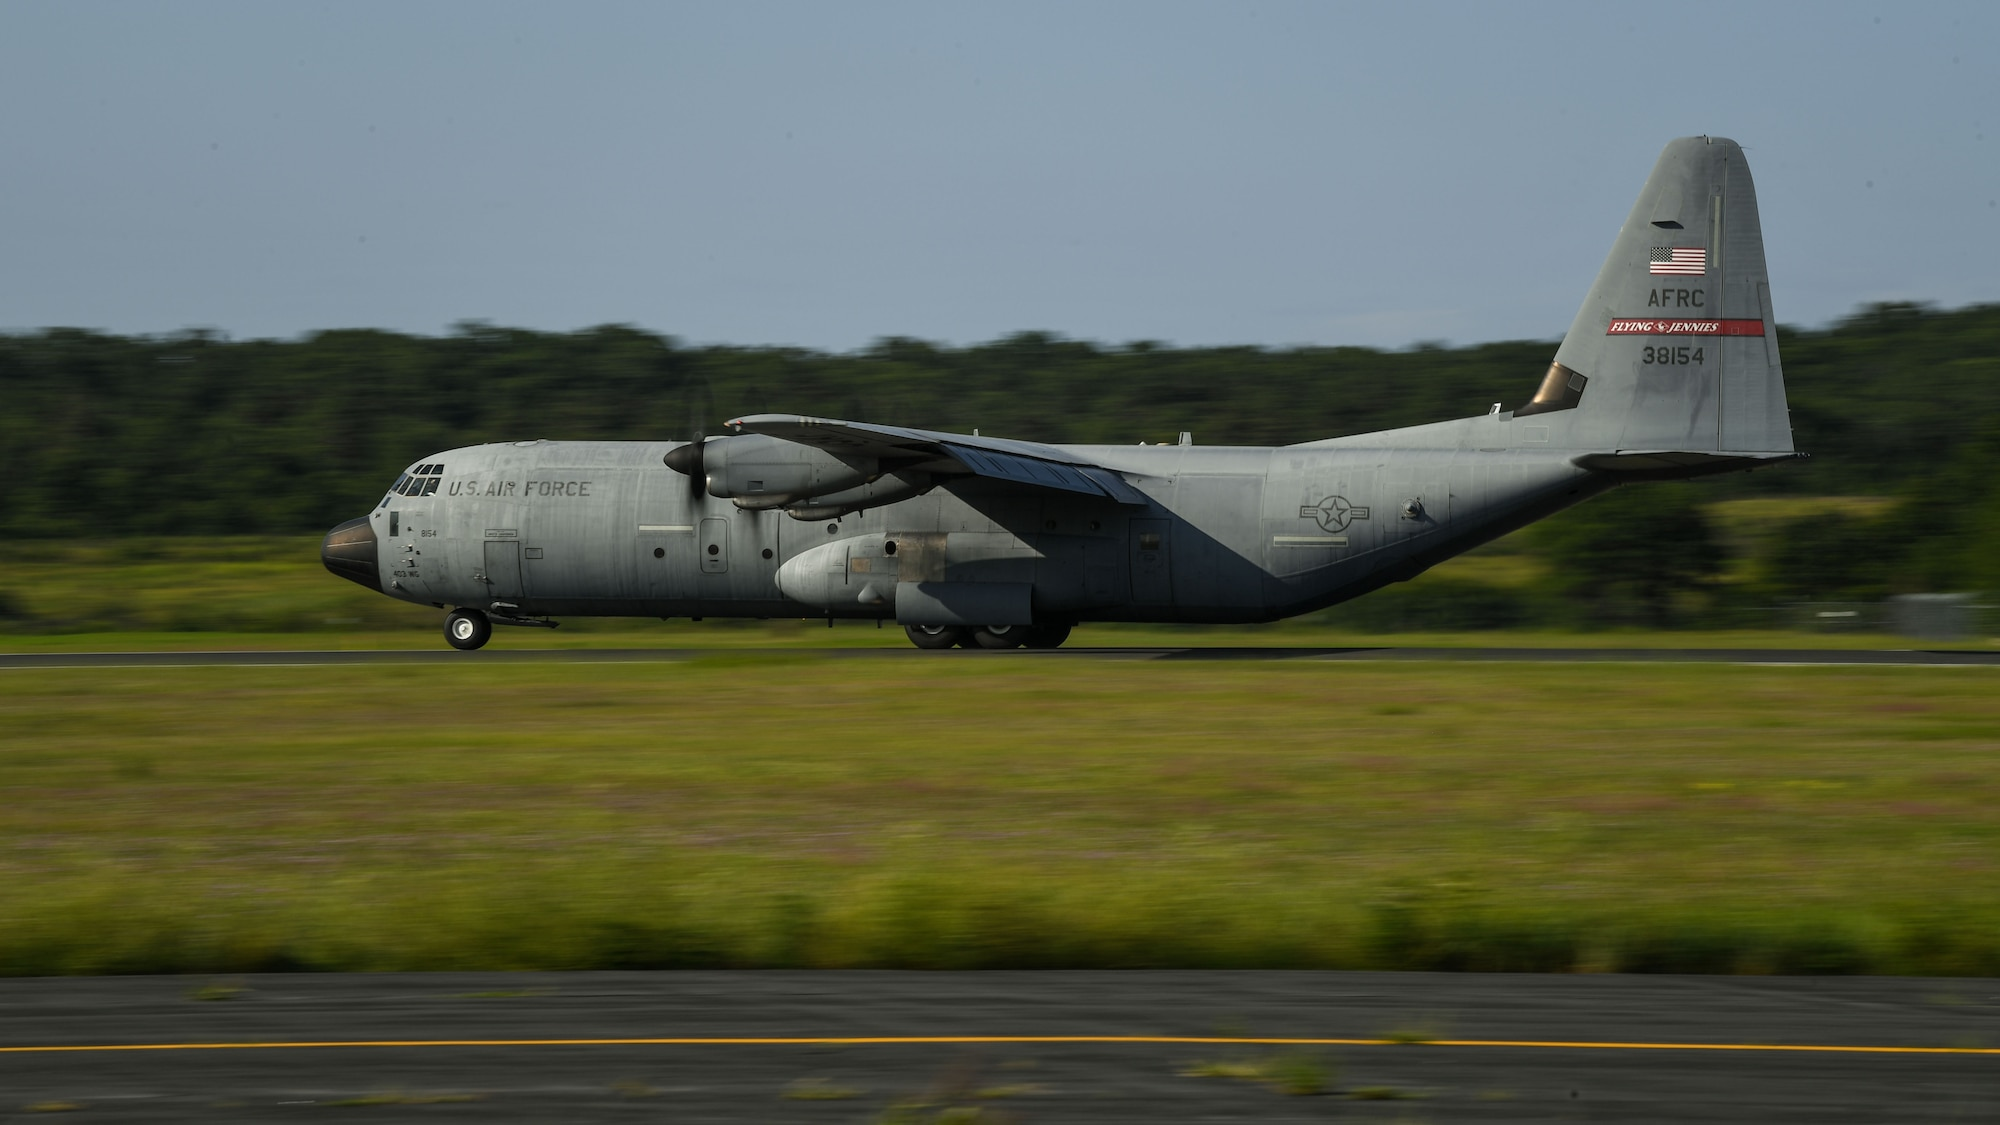 A U.S. Air Force C-130J Super Hercules aircraft assigned to the 815th Airlift Squadron with the 403rd Wing at Keesler Air Force Base, Mississippi, arrives at Fort McCoy Army Airfield for aeromedical evacuation training during exercise Patriot Warrior at Fort McCoy, Wisconsin, Aug. 13, 2021. Patriot Warrior is Air Force Reserve Command's premier exercise providing Airmen an opportunity to train with joint and international partners in airlift, aeromedical evacuation, and mobility support. The exercise builds on capabilities for the future fight, increasing the readiness, lethality and agility of the Air Force Reserve. (U.S. Air Force Photo by Tech. Sgt. Corban Lundborg)